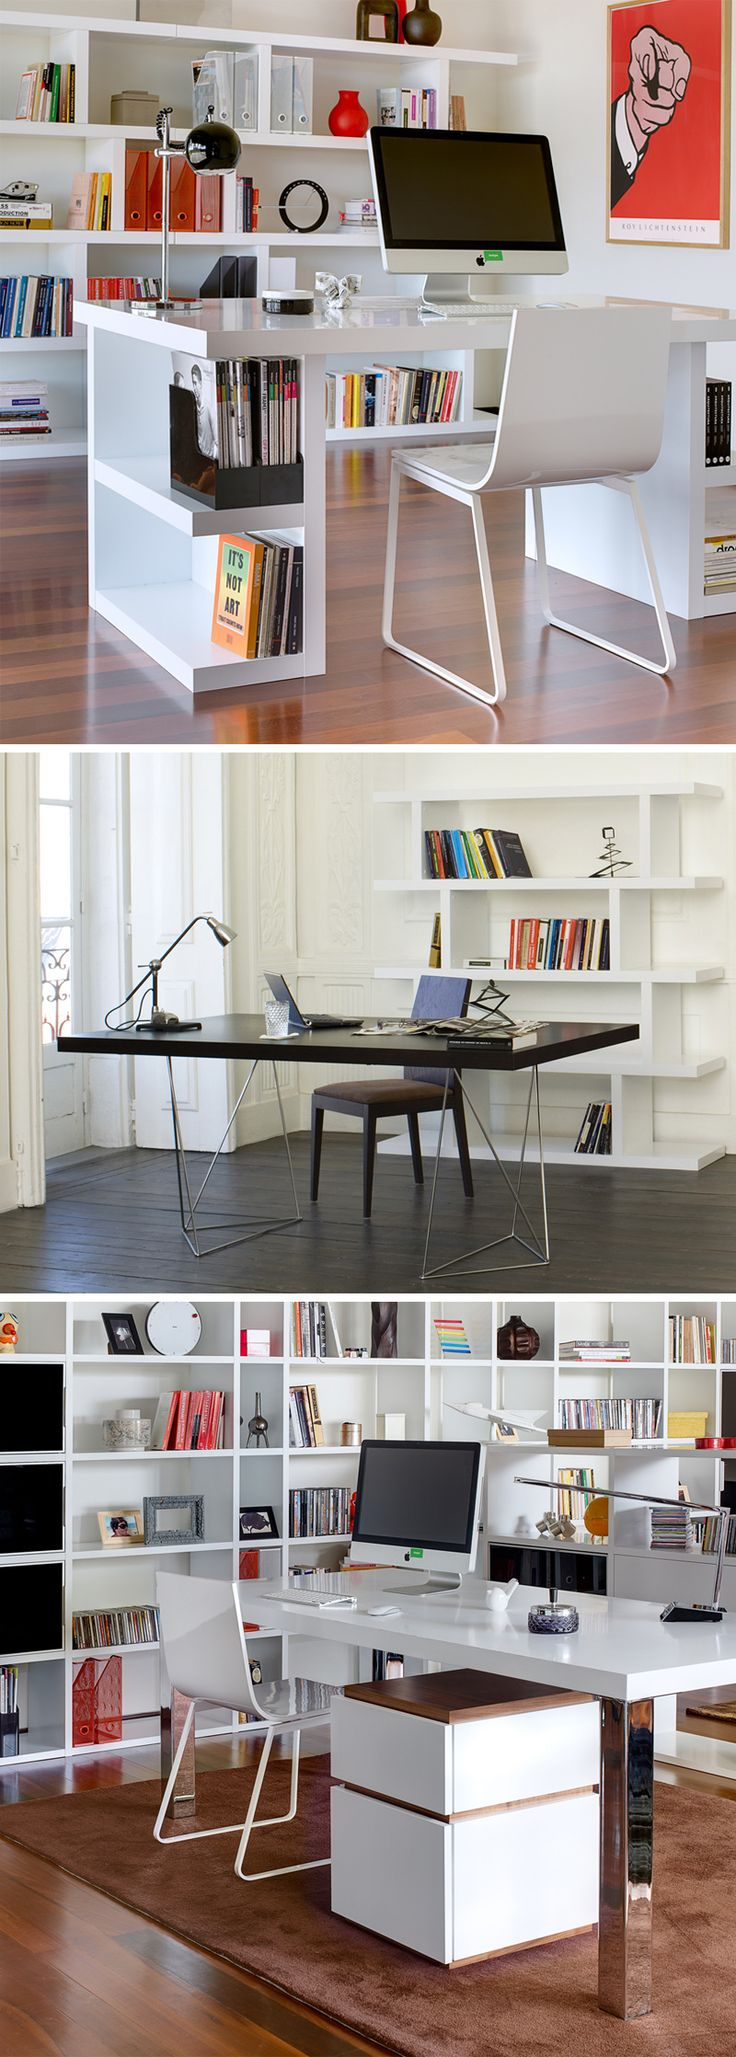 Best 20+ Interior office ideas on Pinterest | Office space design ...